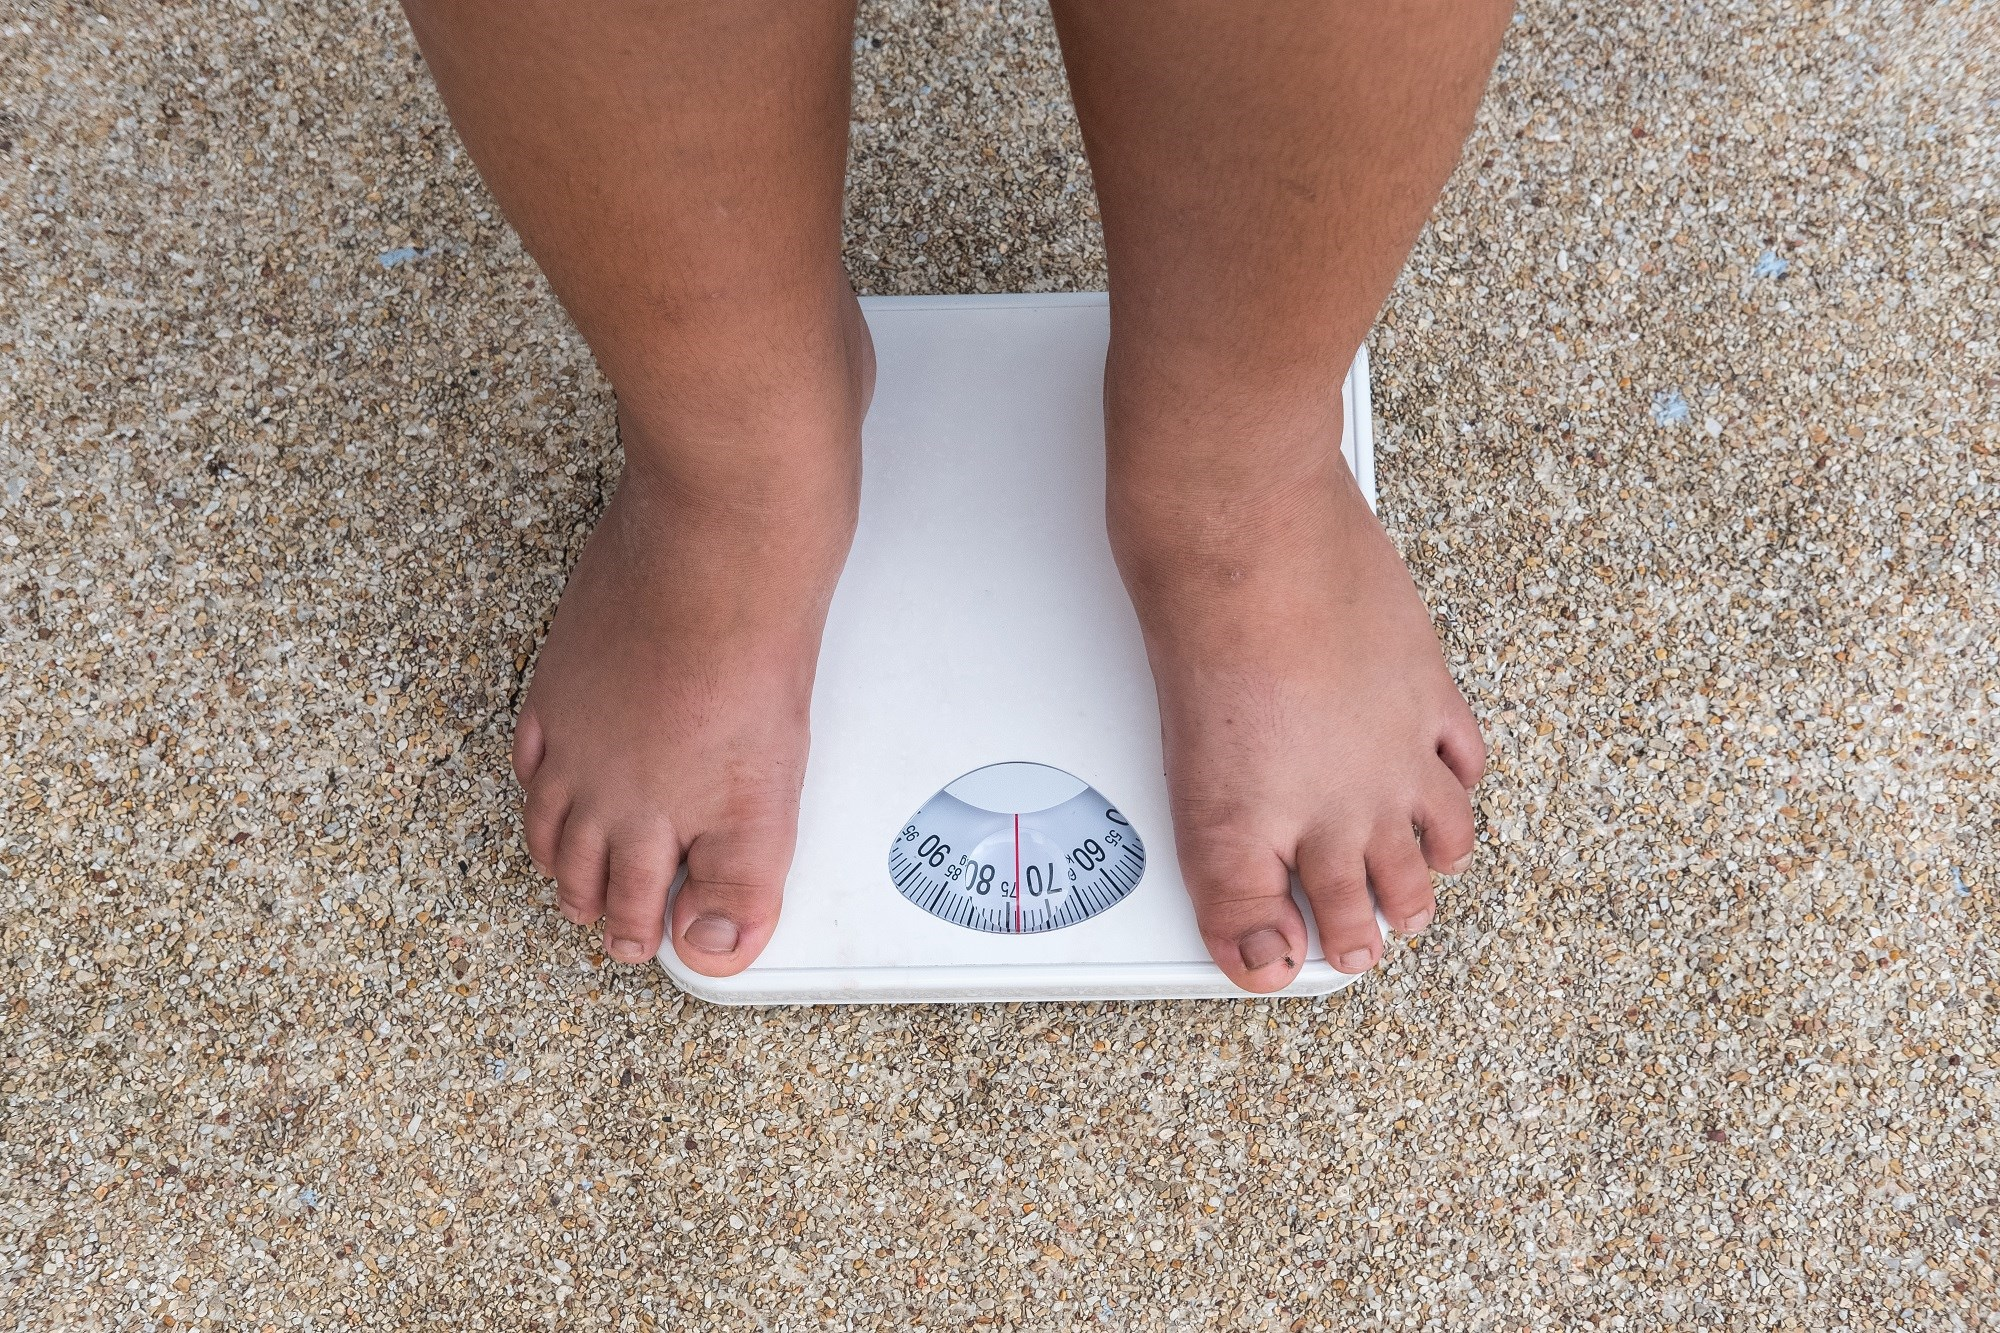 Metabolically Healthy Obese Children at Higher Risk for CVD